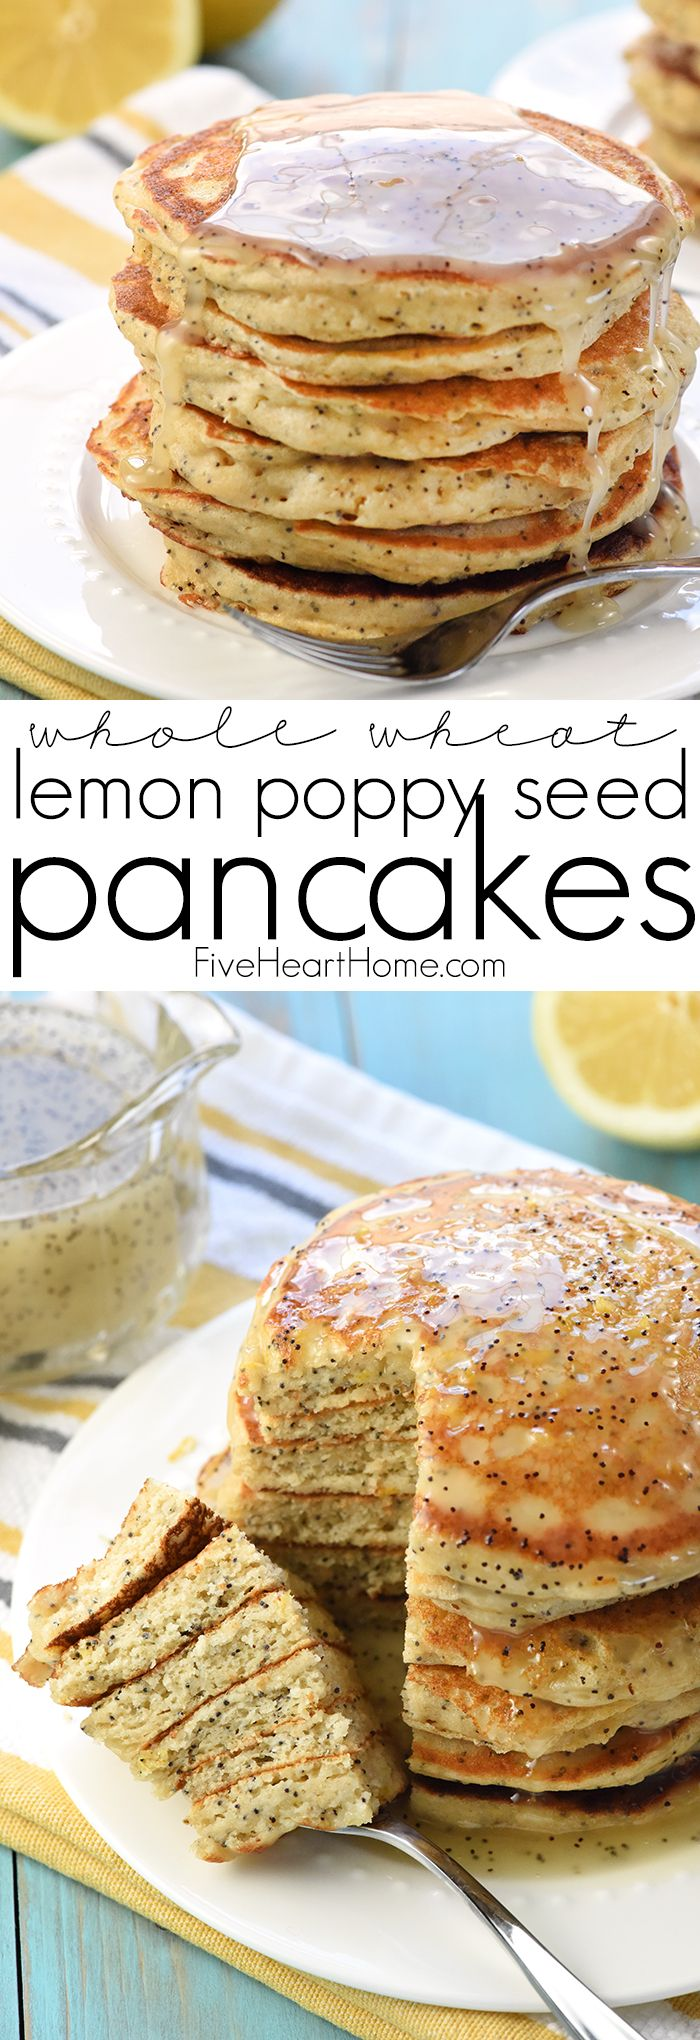 Whole Wheat Lemon Poppy Seed Pancakes ~ wholesome and delicious pancakes drizzled with a scrumptious Lemon Poppy Seed Syrup make a lovely spring or su...